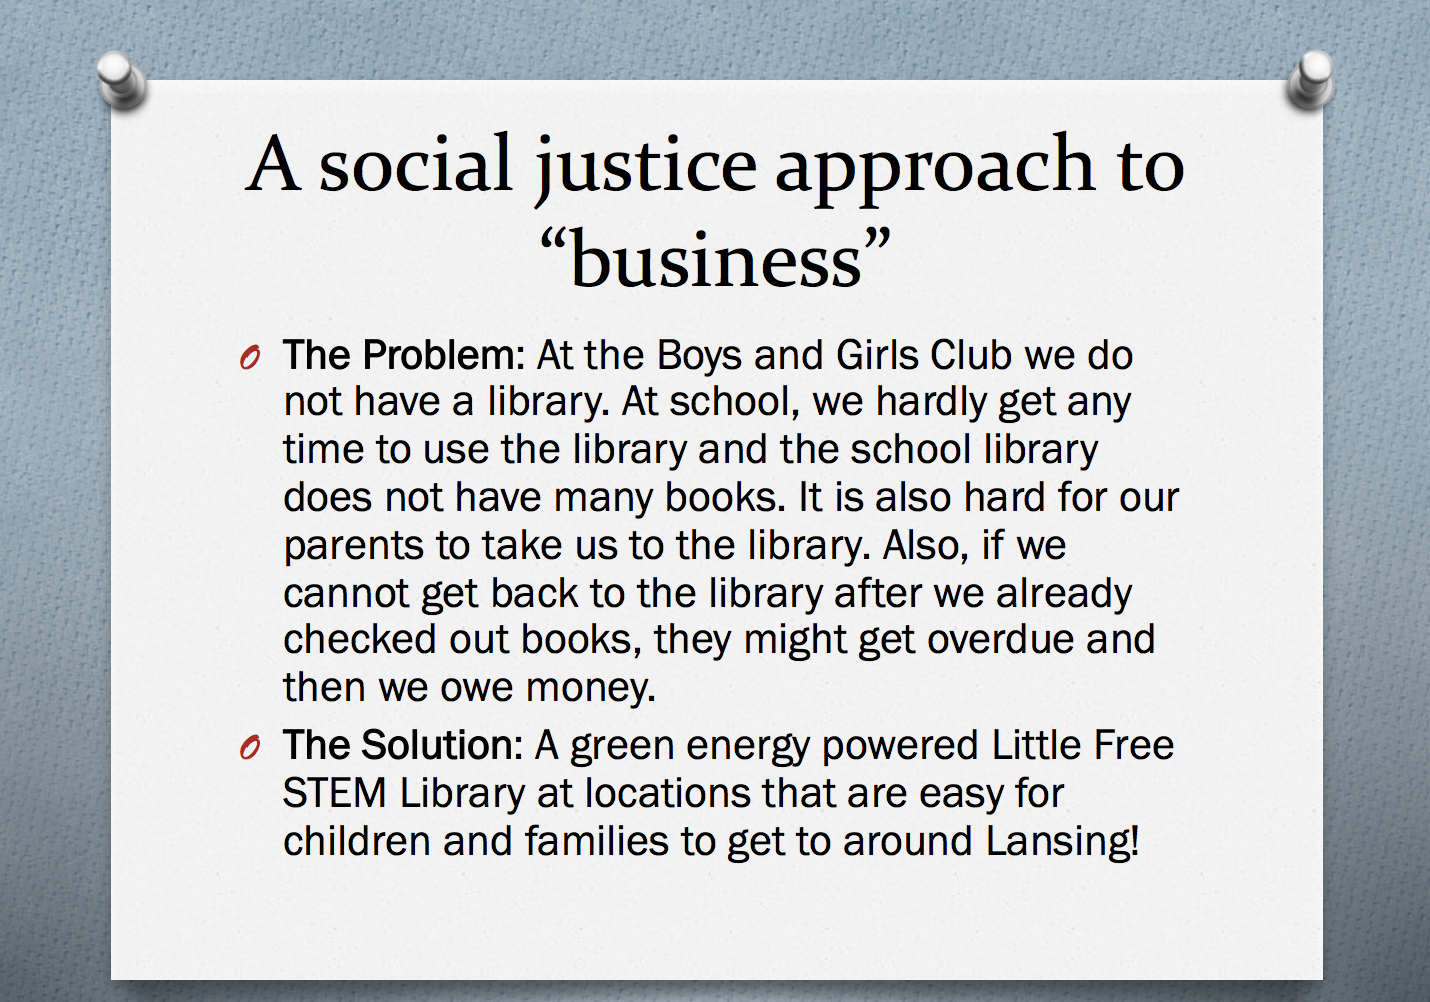 A social justice business approach to the little free library ideas to put in the library and how we are gonna put them in other places other than the boys and girls club i hope you enjoyed the blog post autumn ccuart Gallery